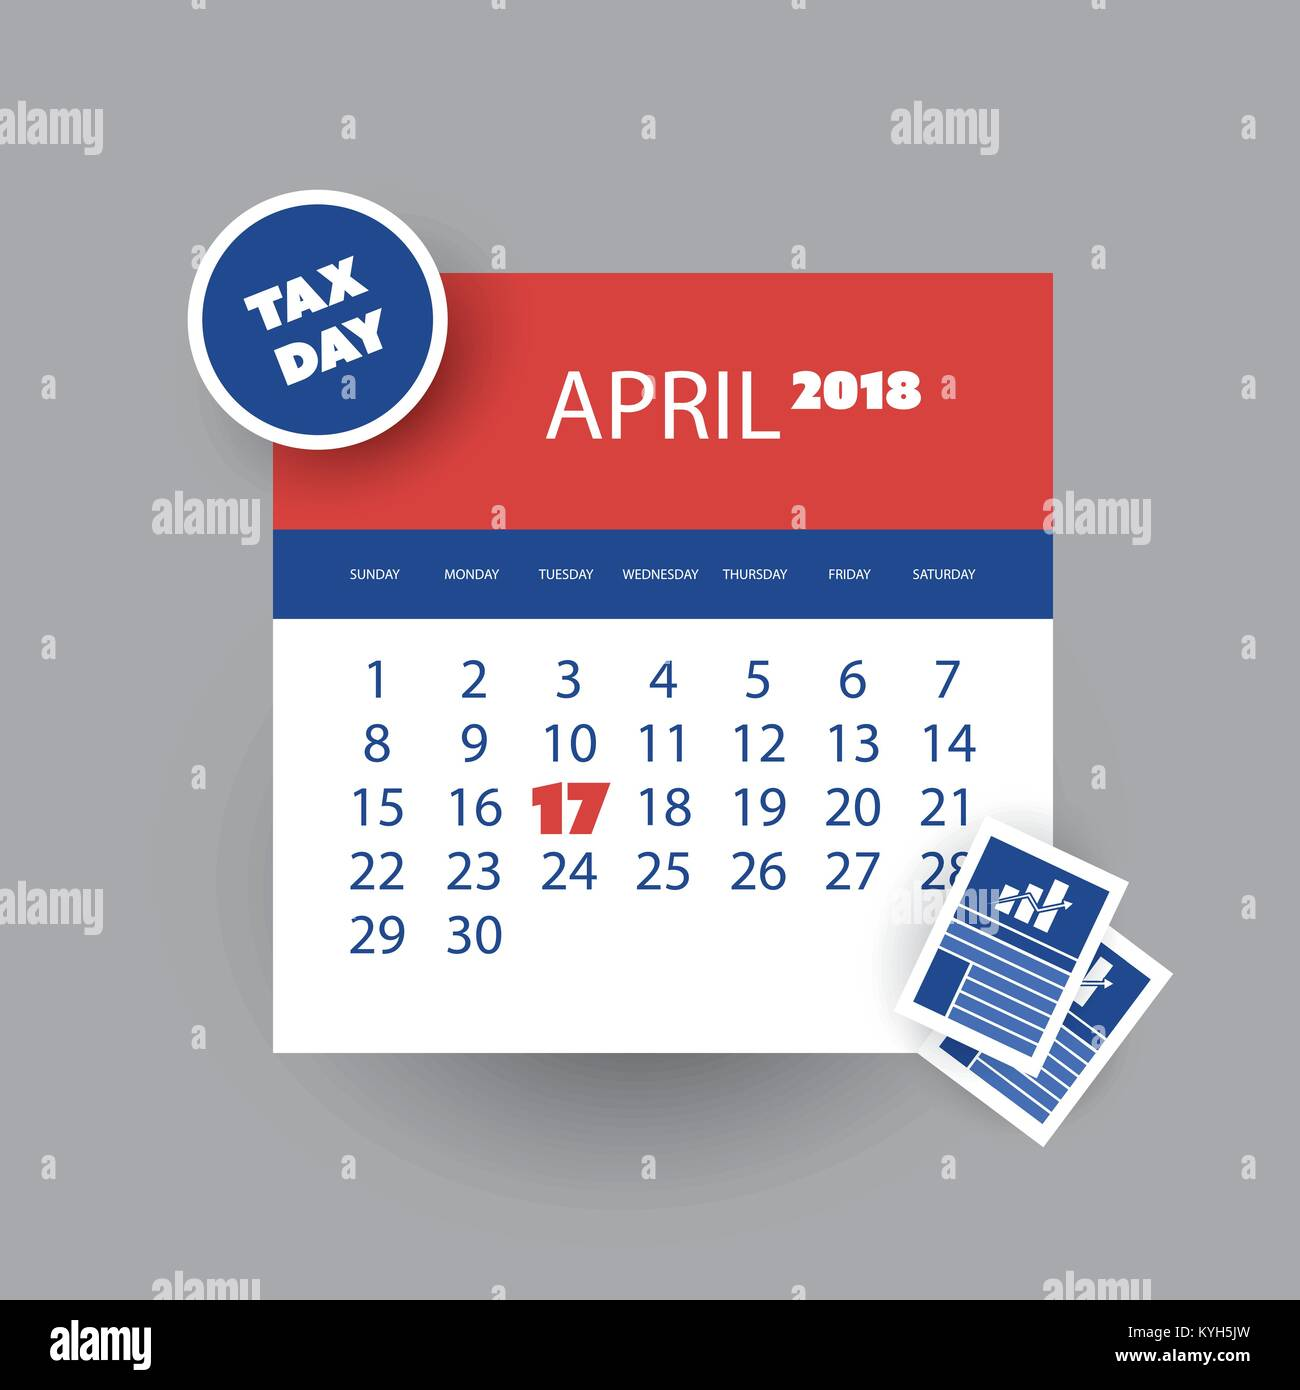 Tax Day Concept Rappel Calendrier Modele De Conception